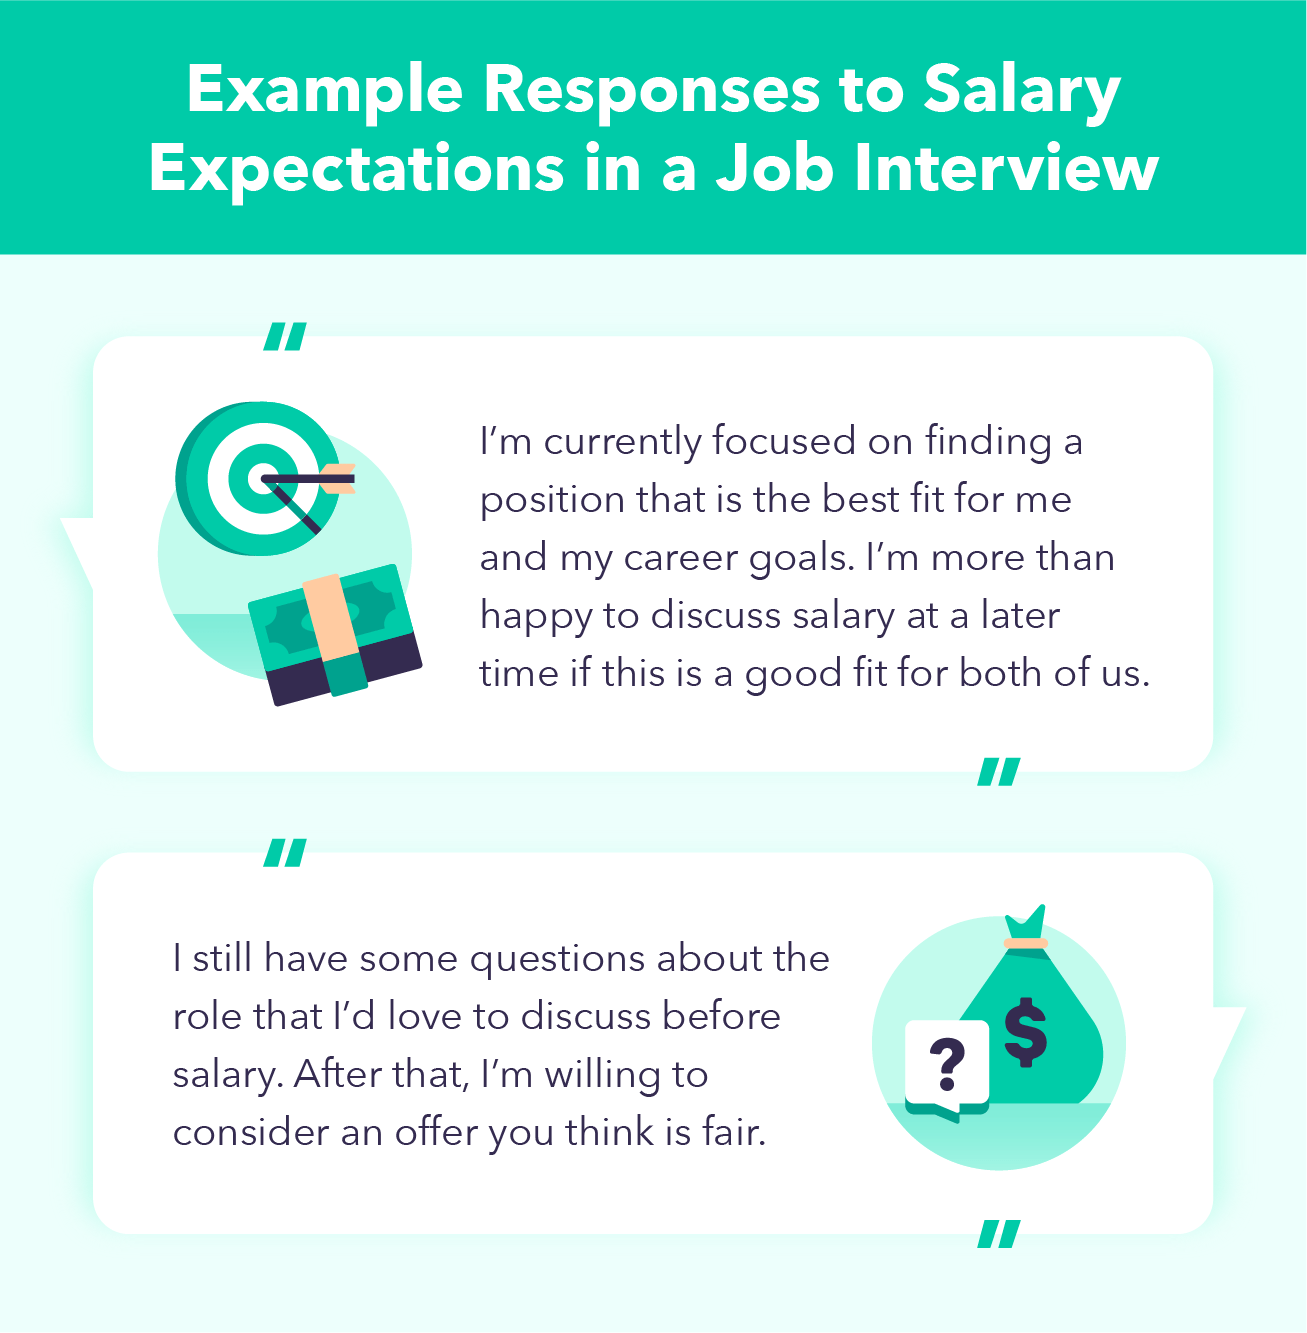 example-responses-to-salary-expectations-in-a-job-interview